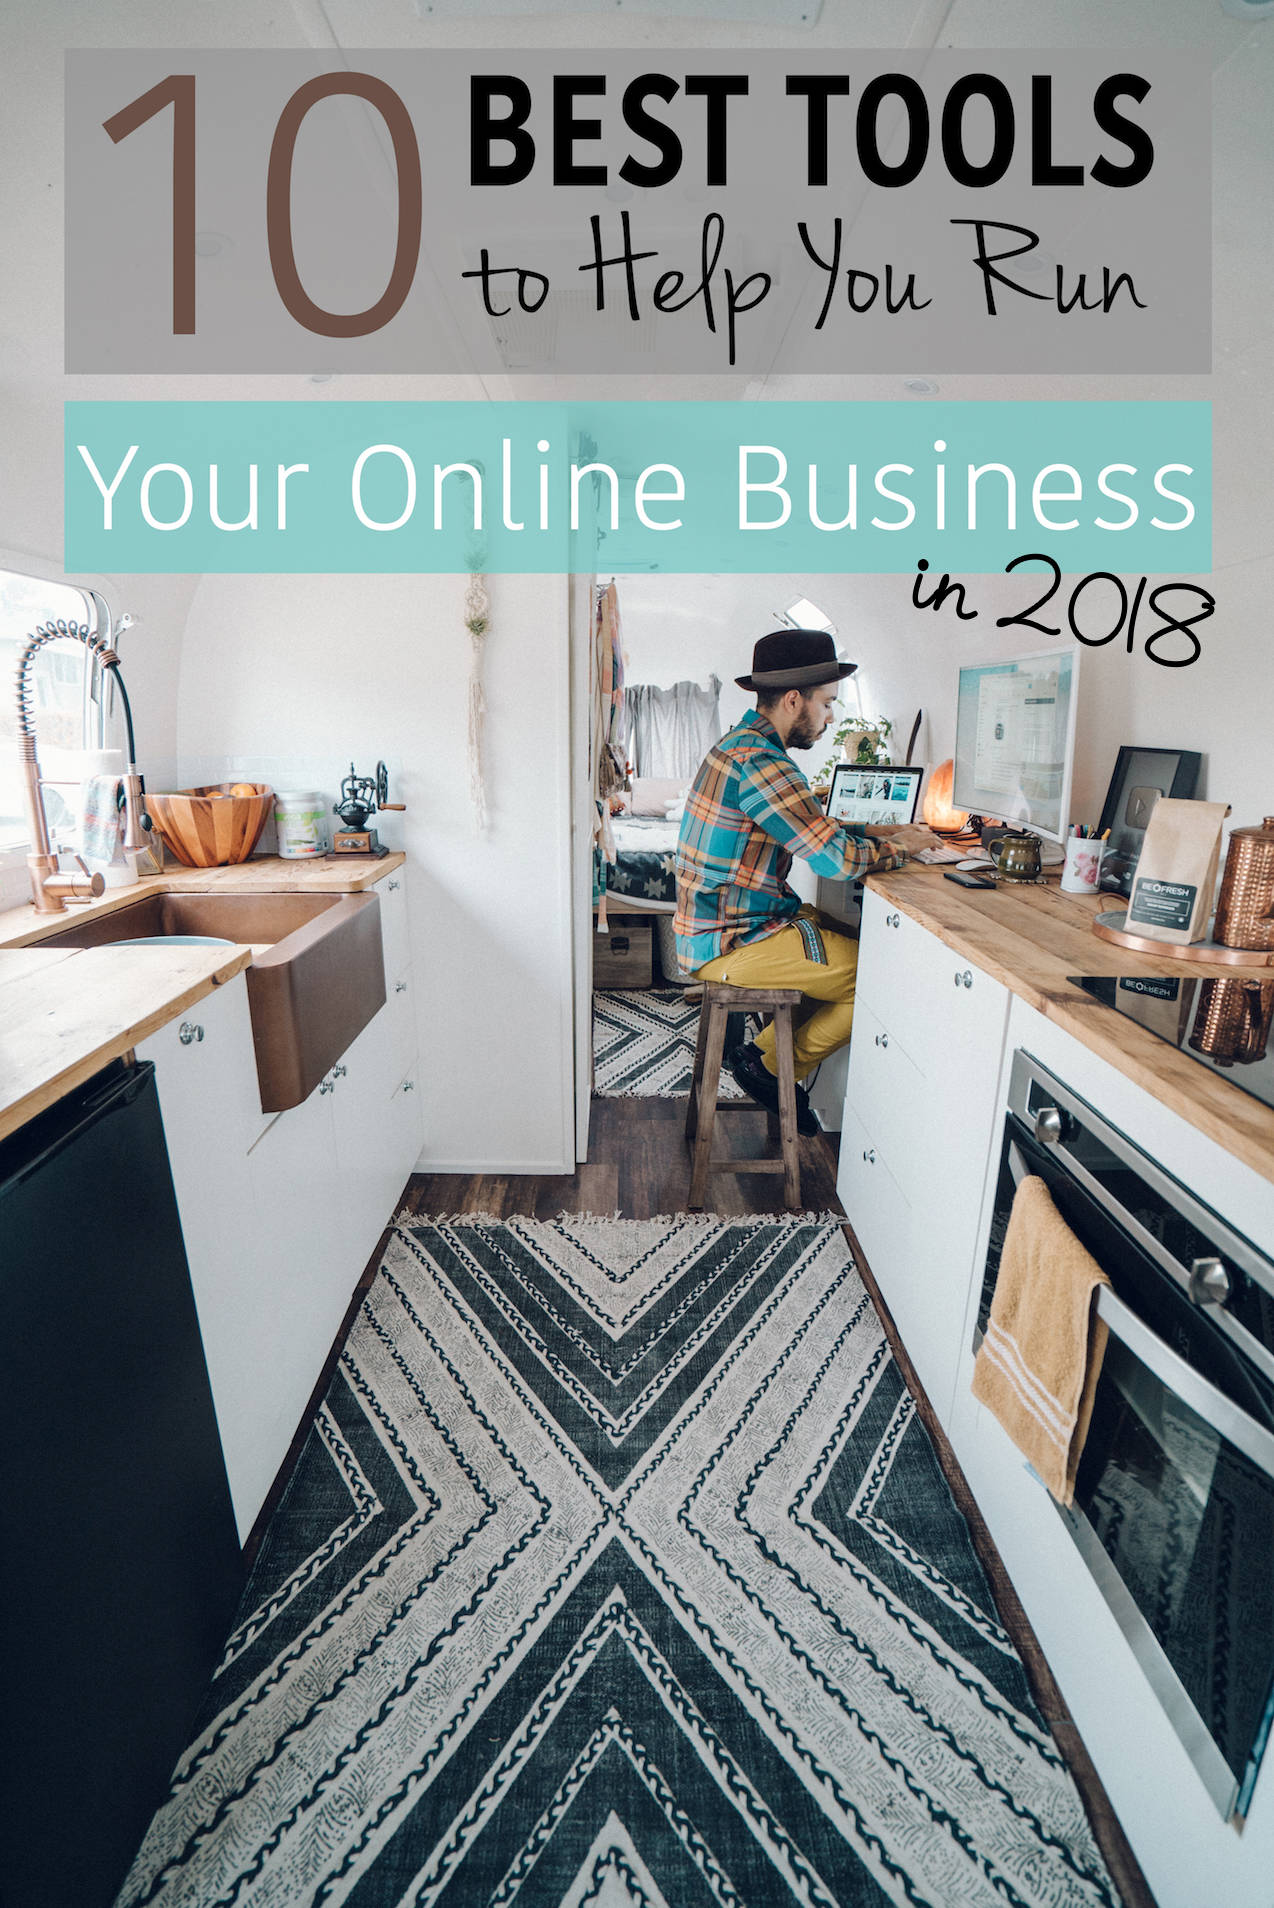 10 Best Tools for Running Your Online Business in 2018